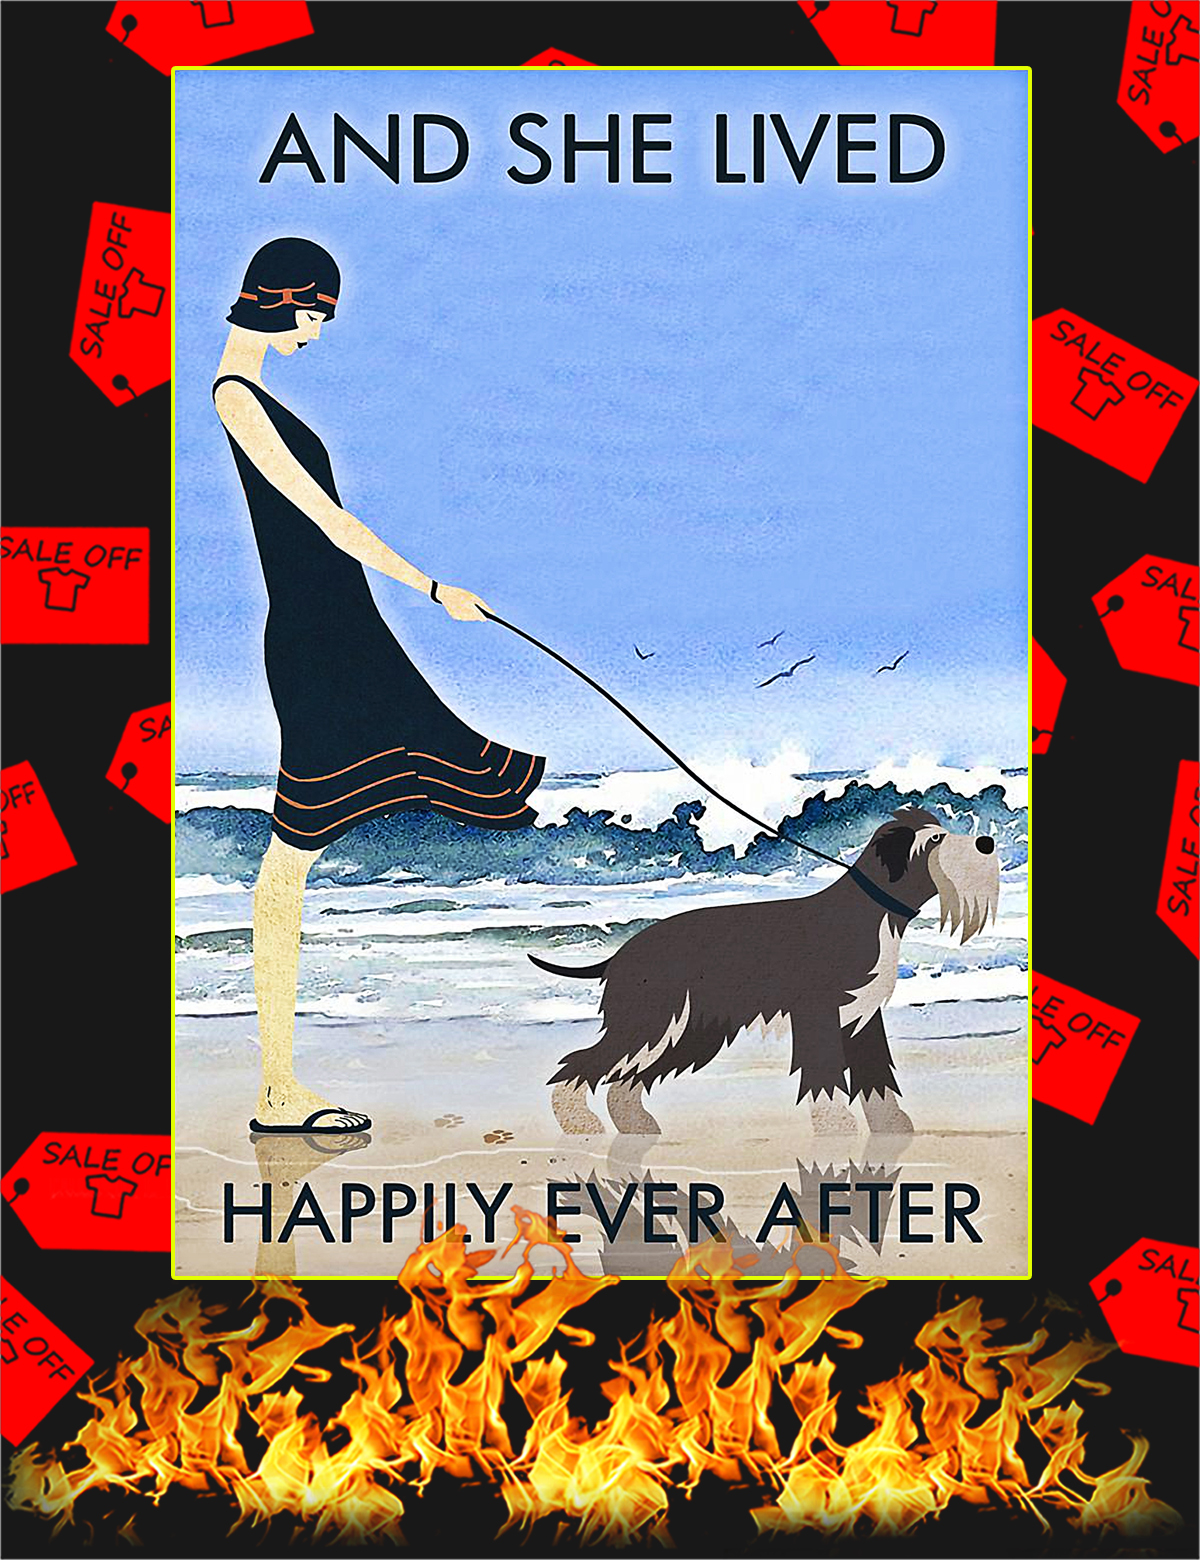 Beach and dog miniature schnauzer and she lived happily ever after poster